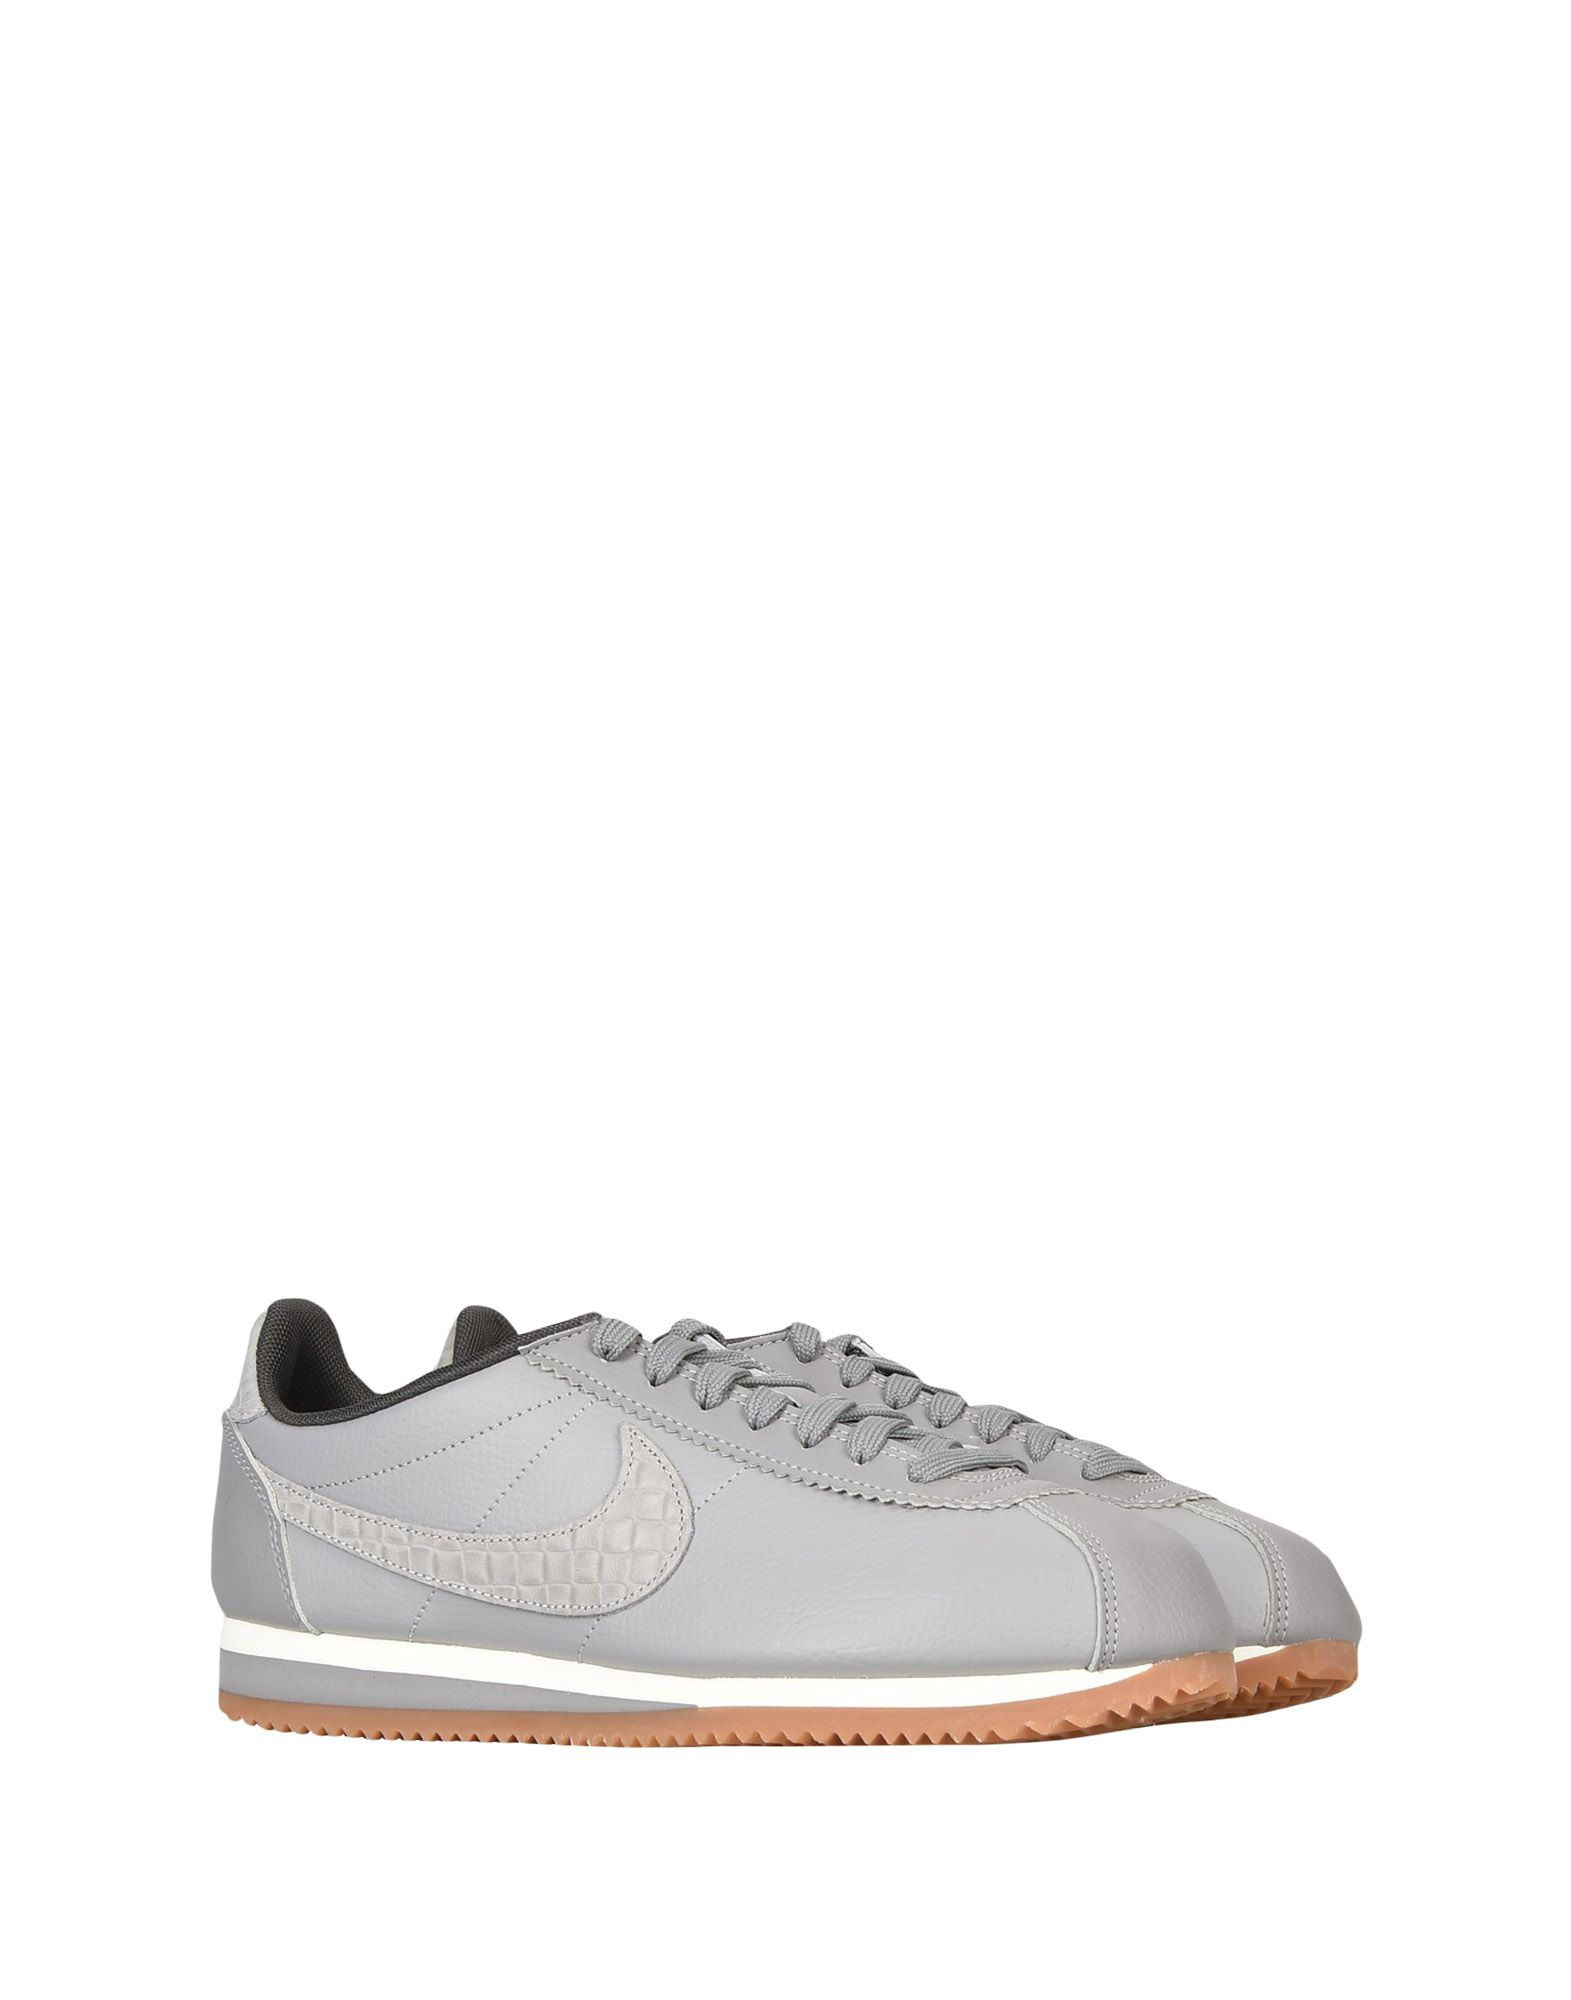 Sneakers Nike Classic Cortez Leather Lux - Femme - Sneakers Nike sur